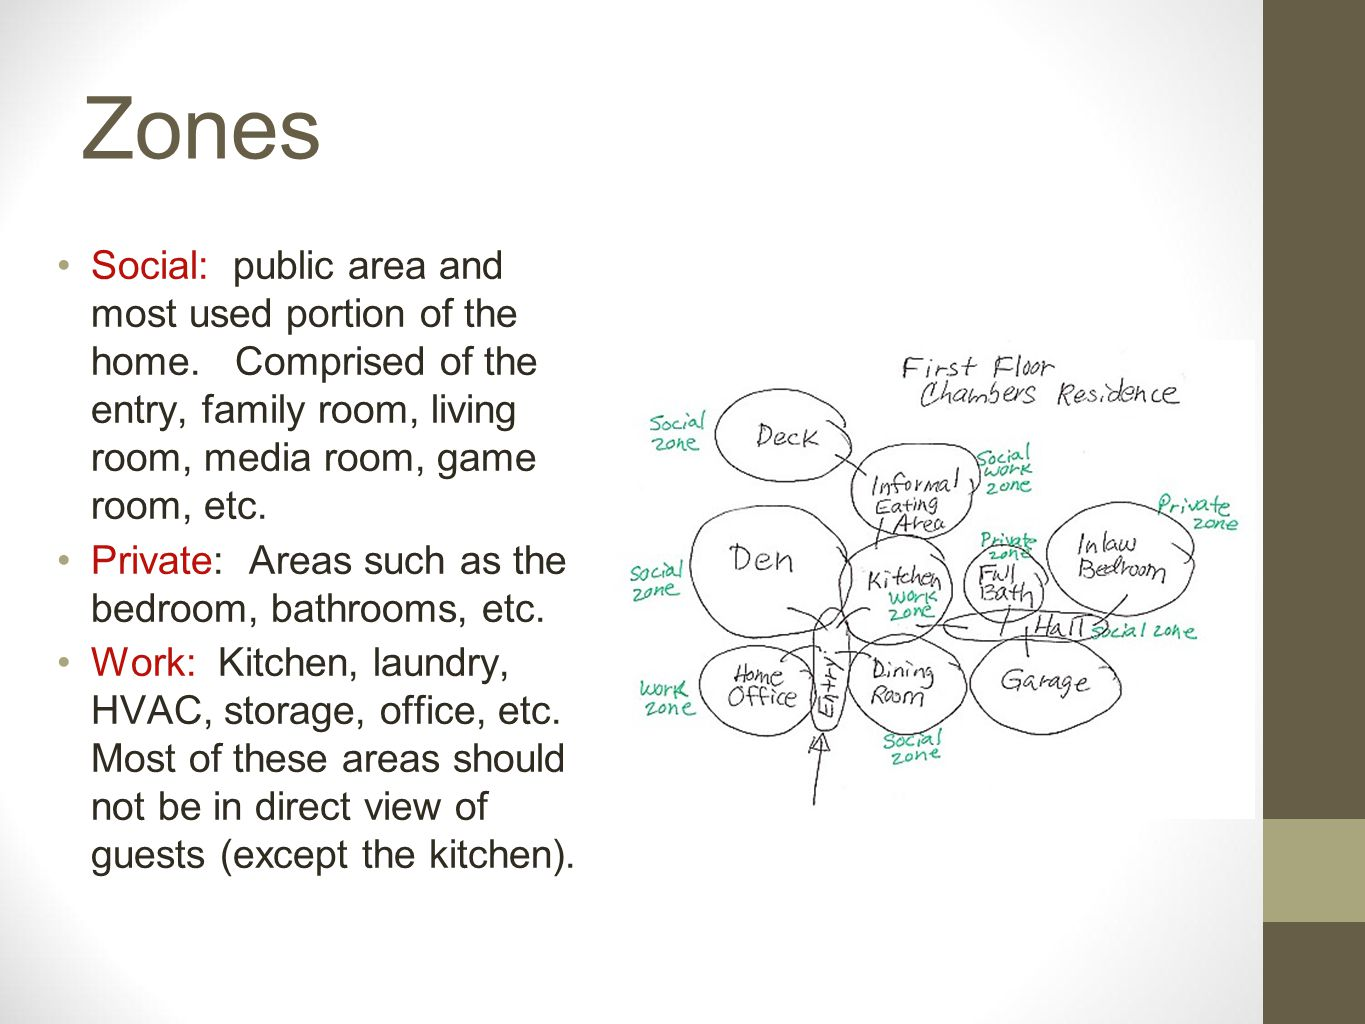 Zones Social: public area and most used portion of the home. Comprised of the entry, family room, living room, media room, game room, etc.